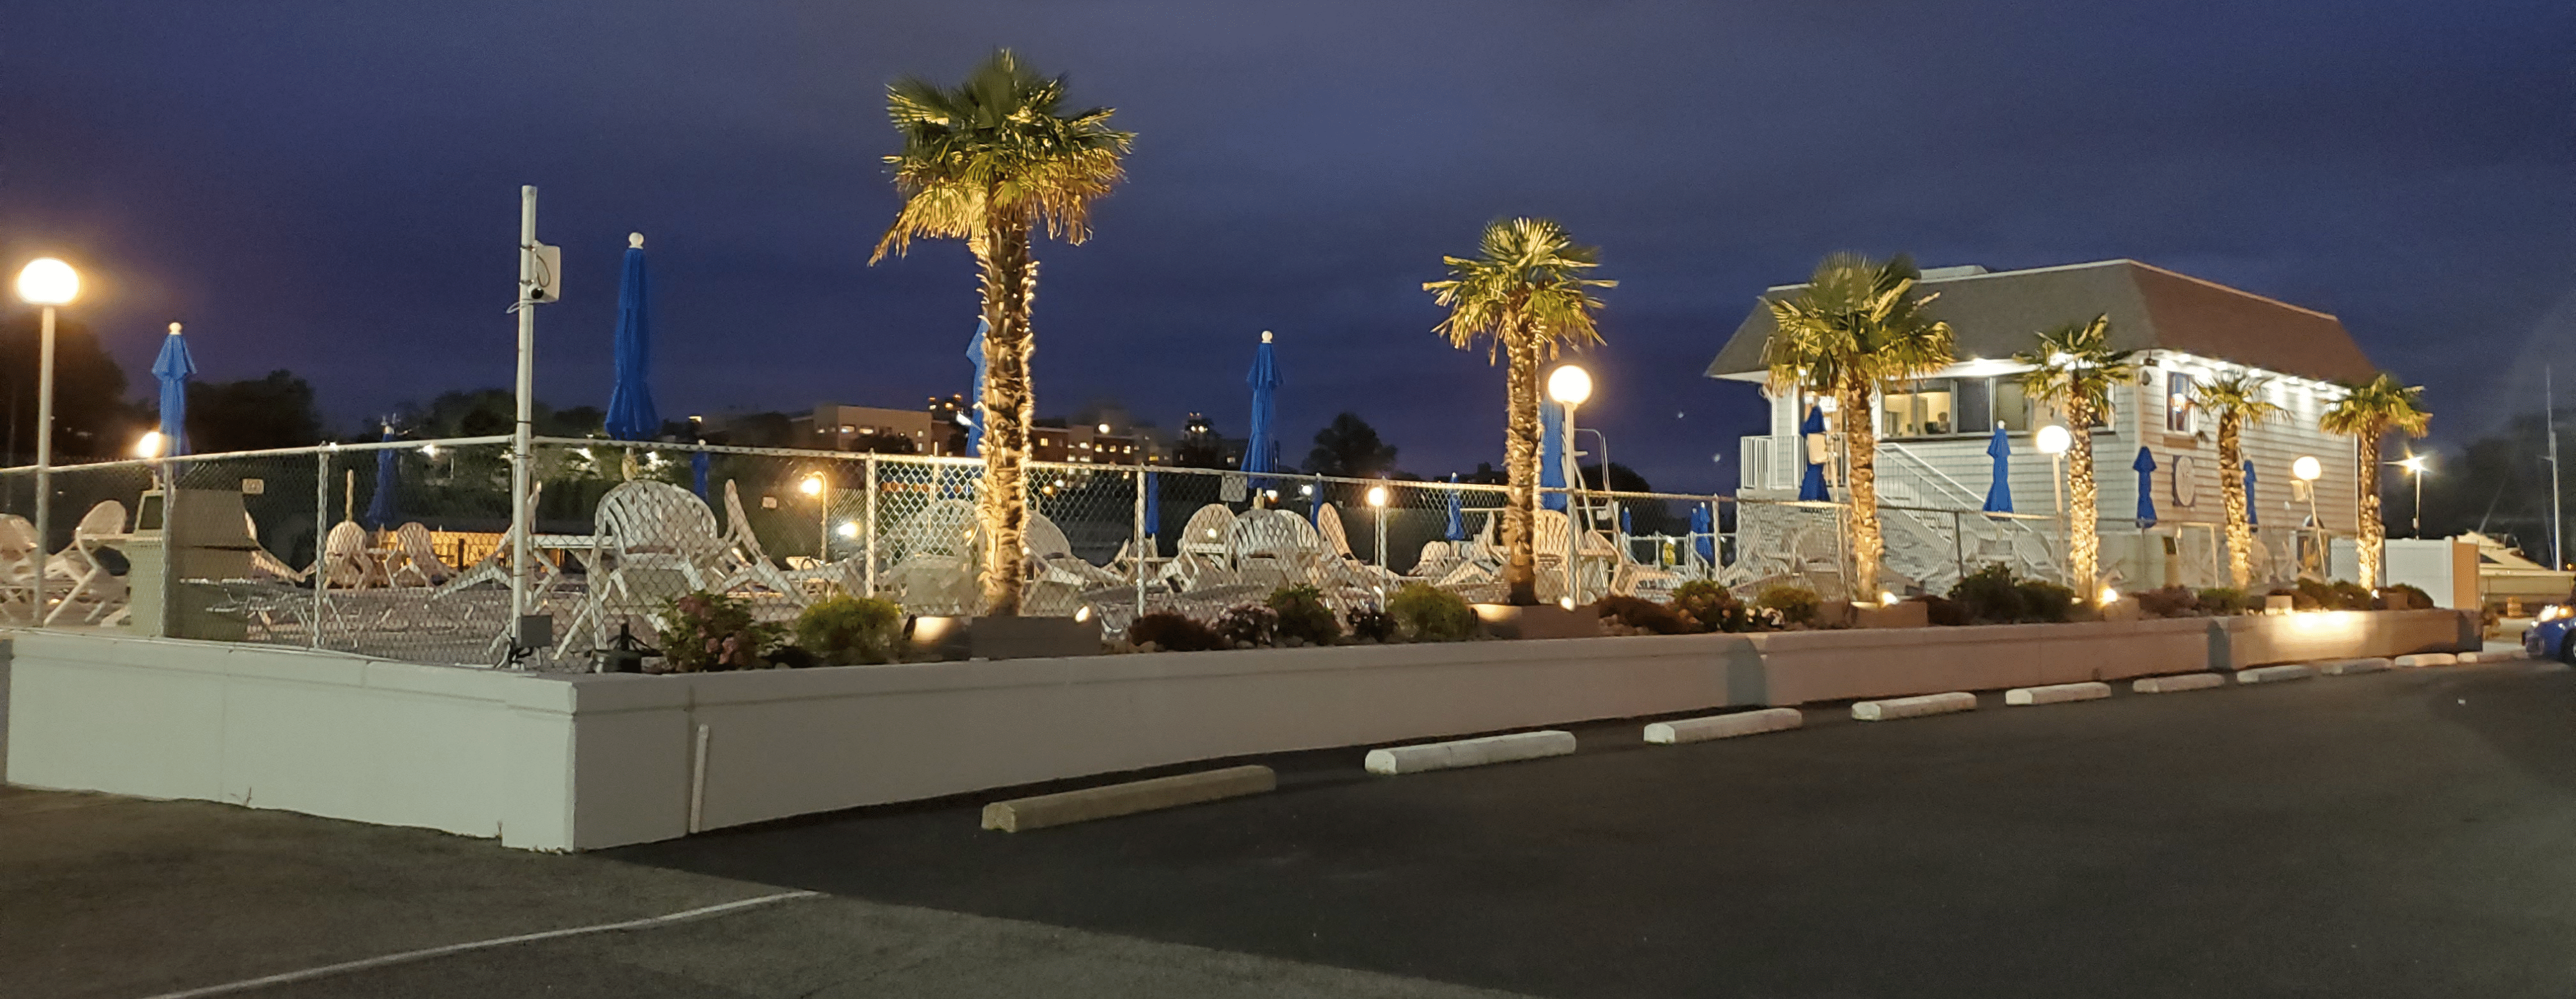 Imperial Yacht Club Palm Trees